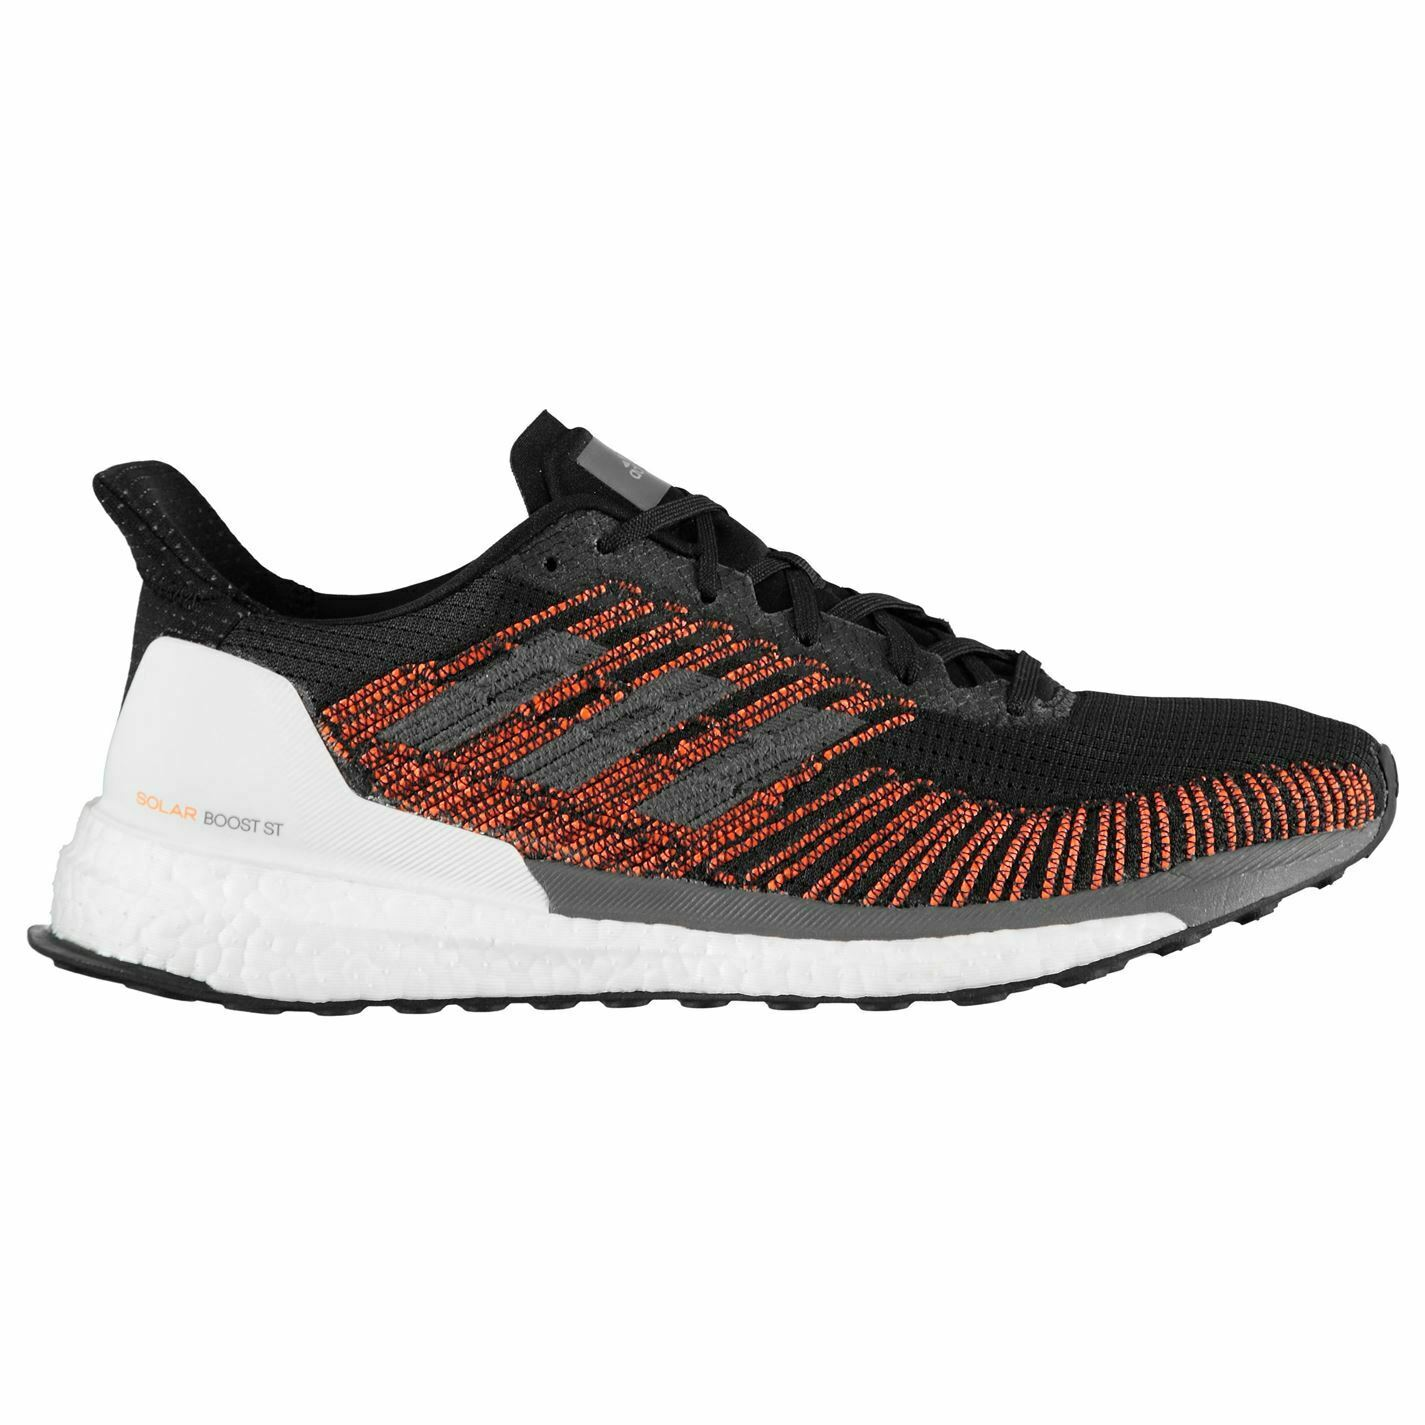 Adidas Mens SolarBoost ST Running Road Sports shoes Trainers Pumps  Sneakers  factory direct